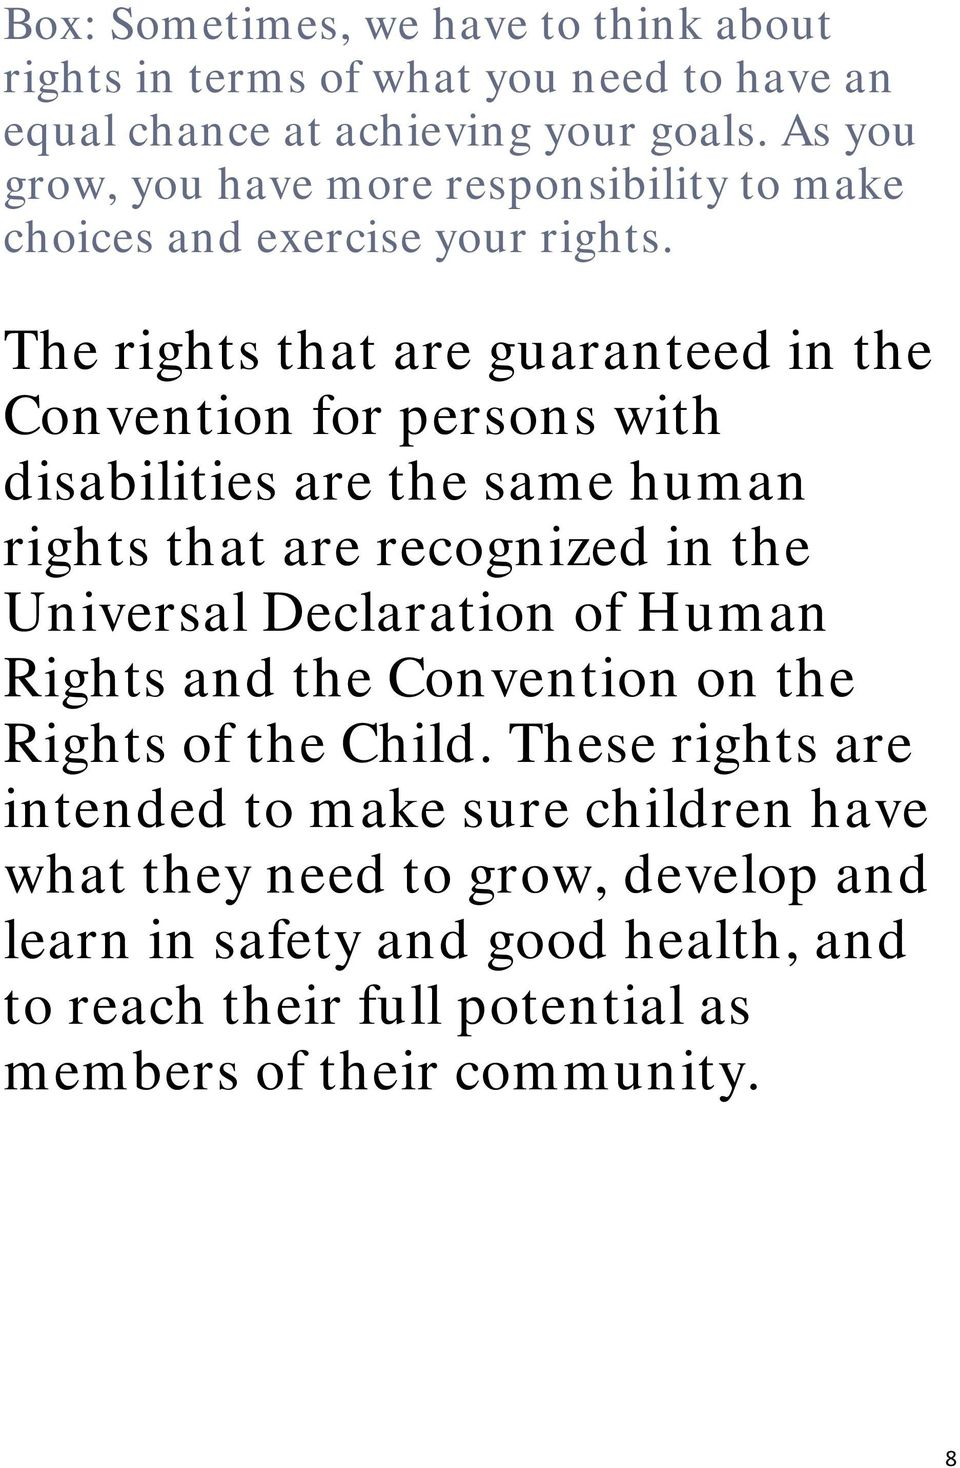 The rights that are guaranteed in the Convention for persons with disabilities are the same human rights that are recognized in the Universal